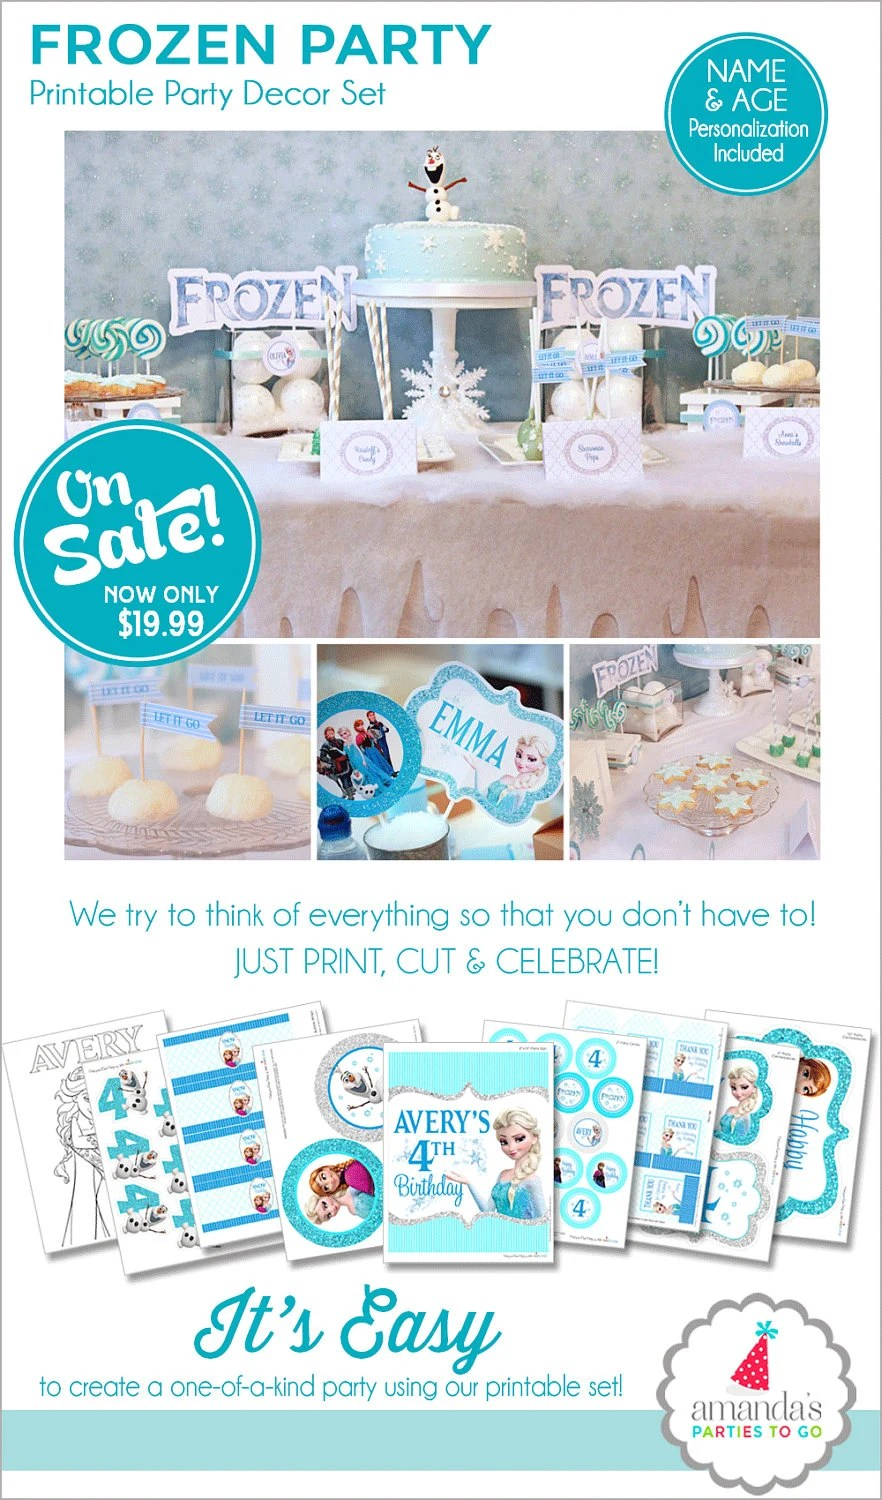 Frozen Birthday Party Decorations Frozen Party Printable Etsy